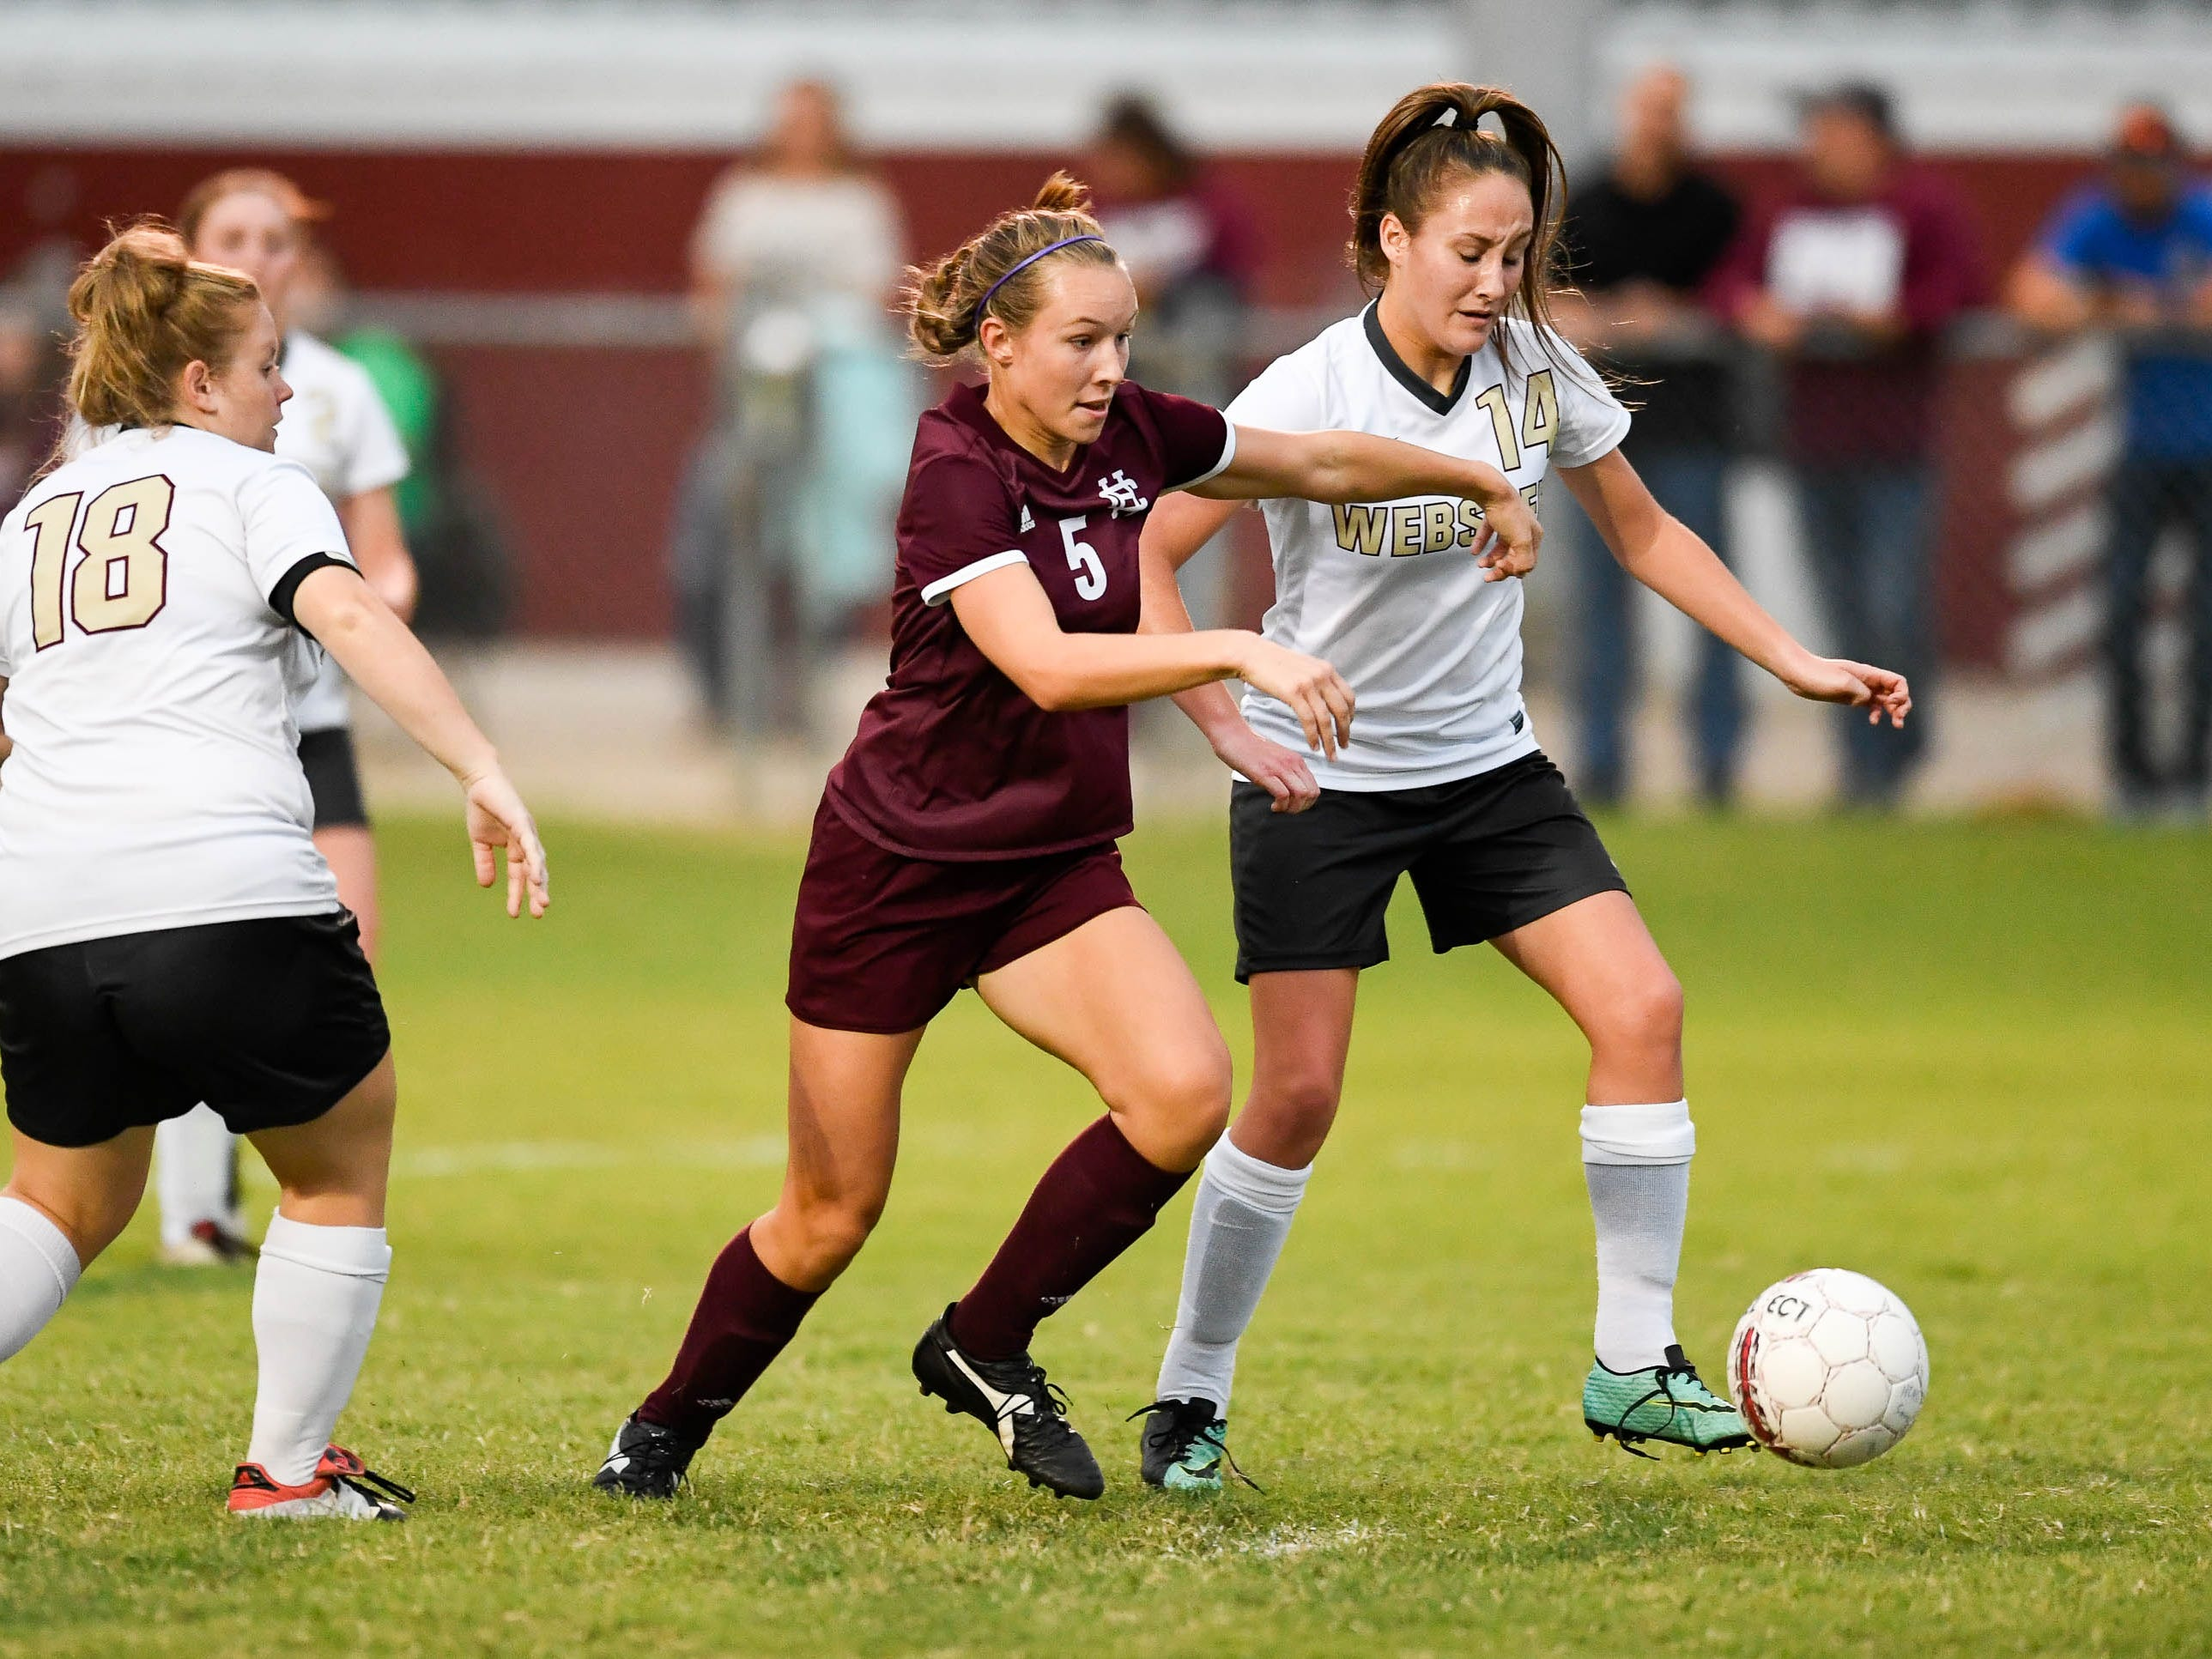 Henderson's Maddie Griggs (5) drives past Webster's Brooklyn Conrad (14) to score a goal as the Henderson County Lady Colonels play the Webster County Lady Trojans in the Sixth District Soccer Tournament at Colonel Field Wednesdayt, October 10, 2018.